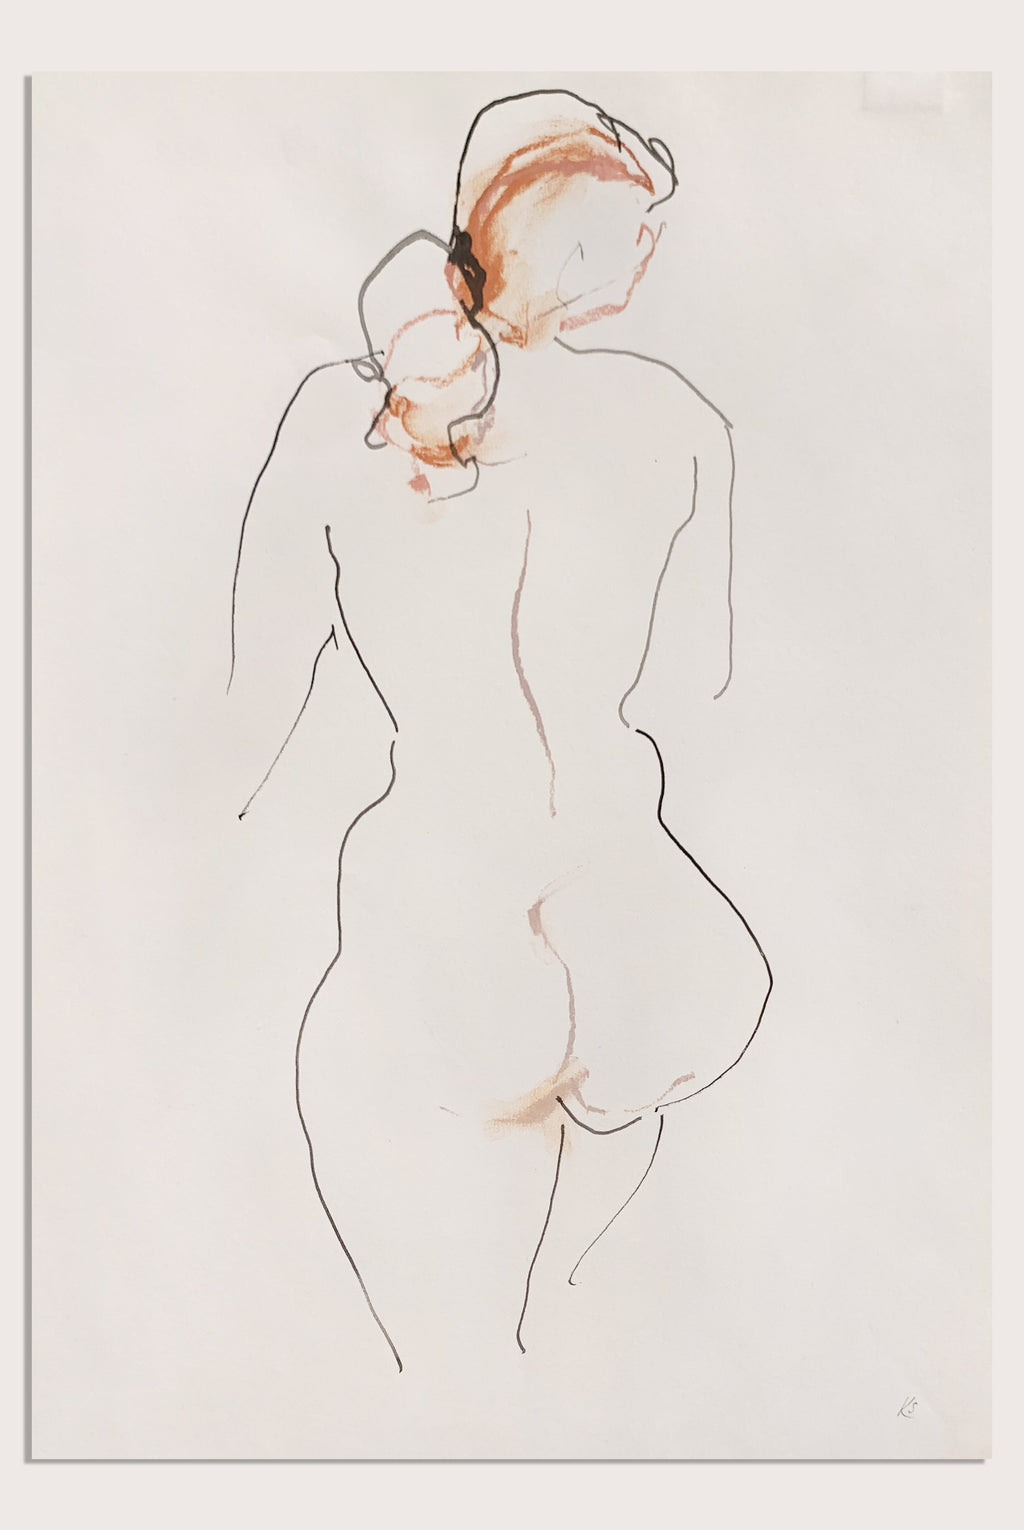 'Your Scent In My Hair', a life drawing by contemporary, woman artist Katherine Sheers